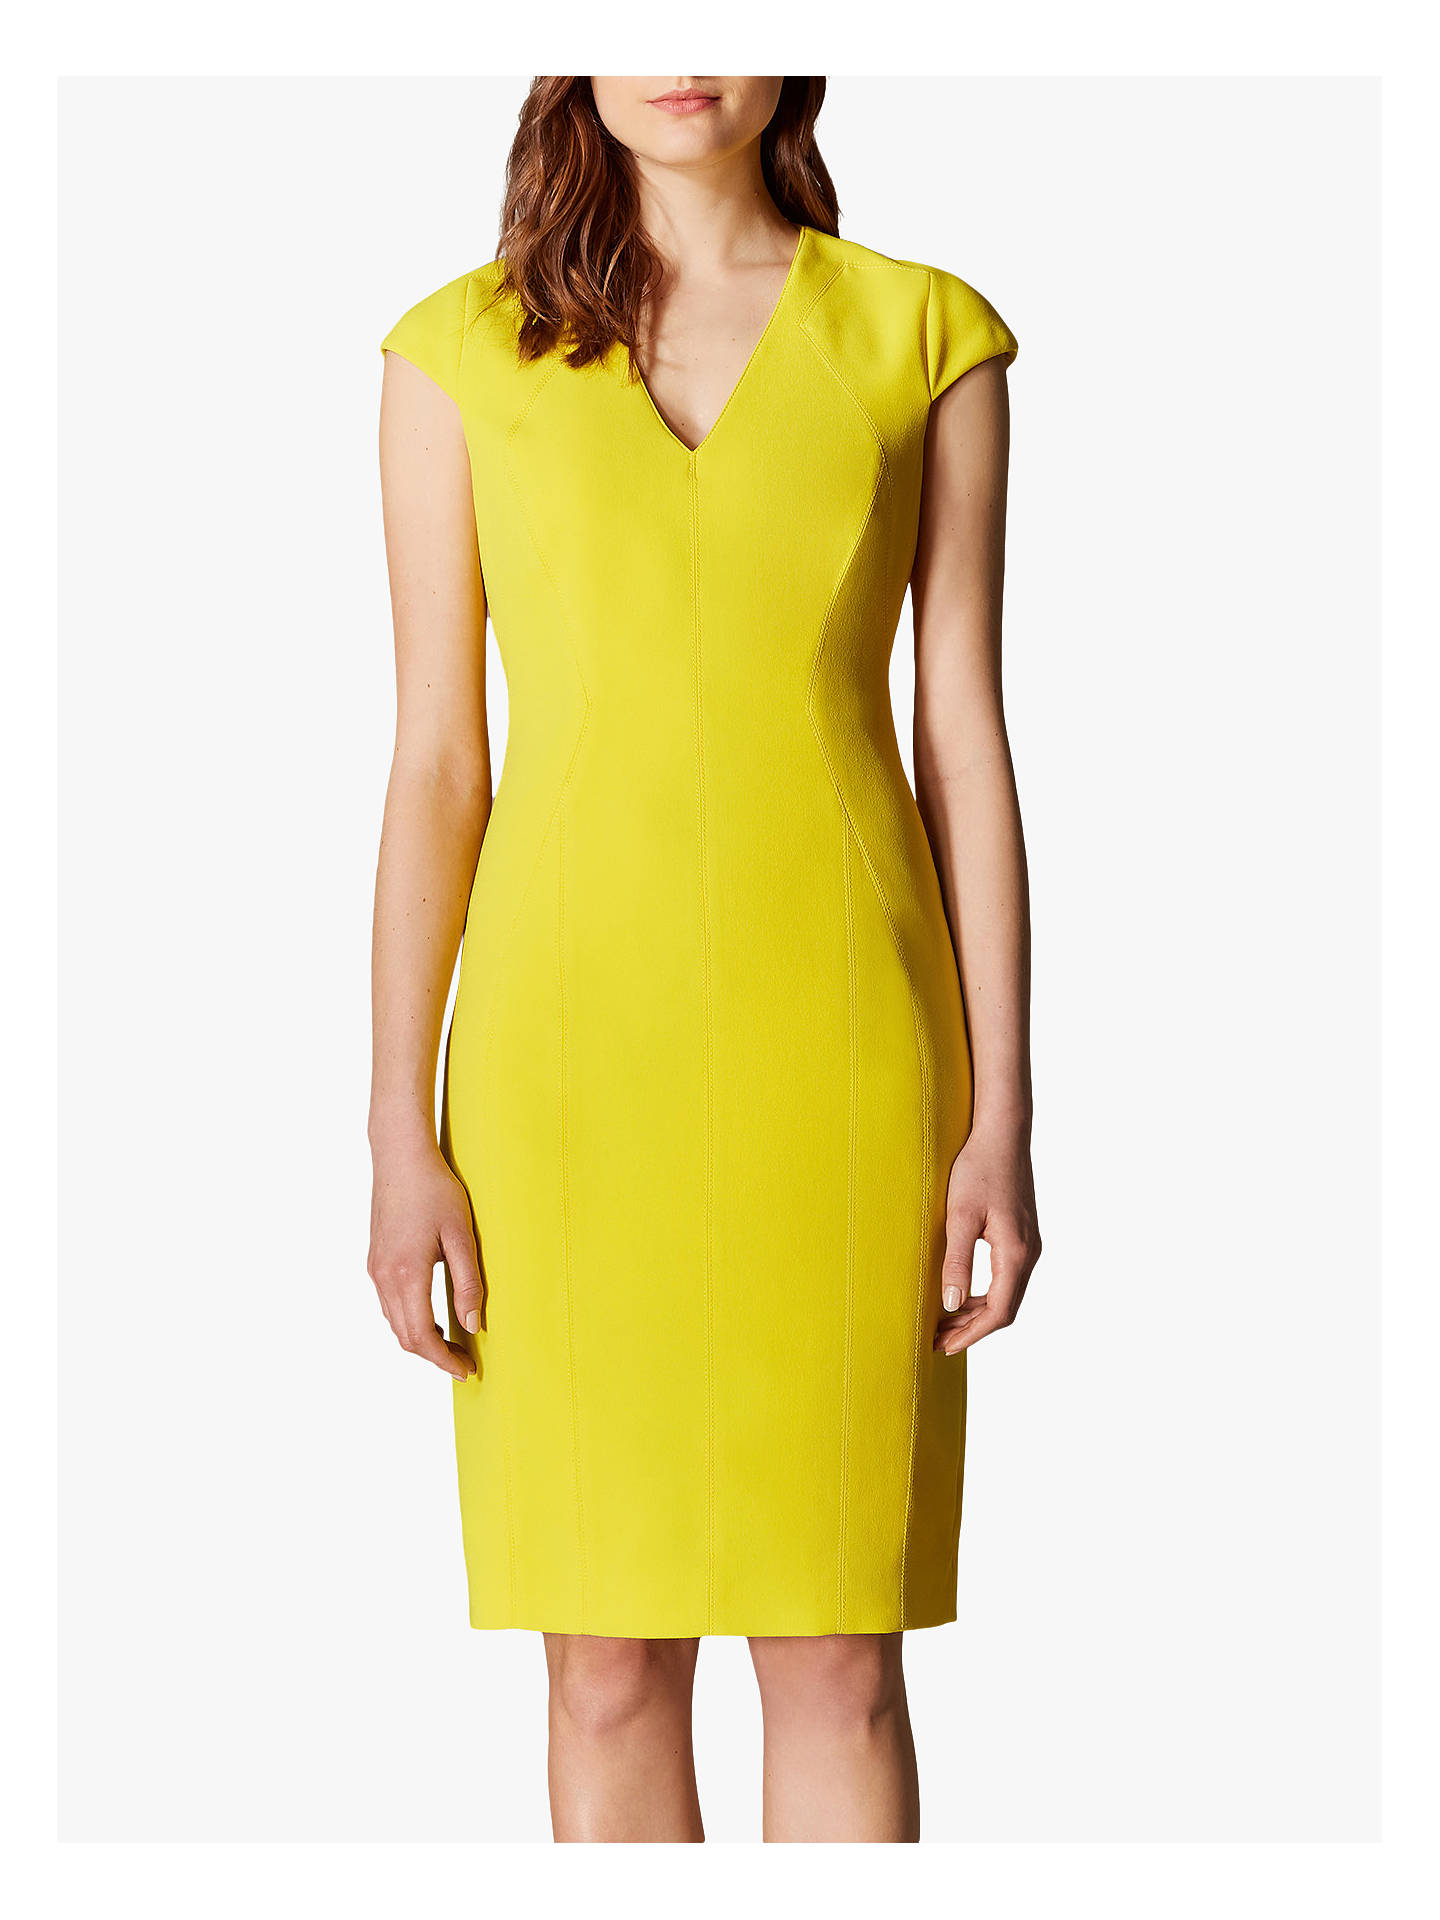 723d1d599e2 Buy Karen Millen V-Neck Pencil Dress, Yellow, 6 Online at johnlewis.